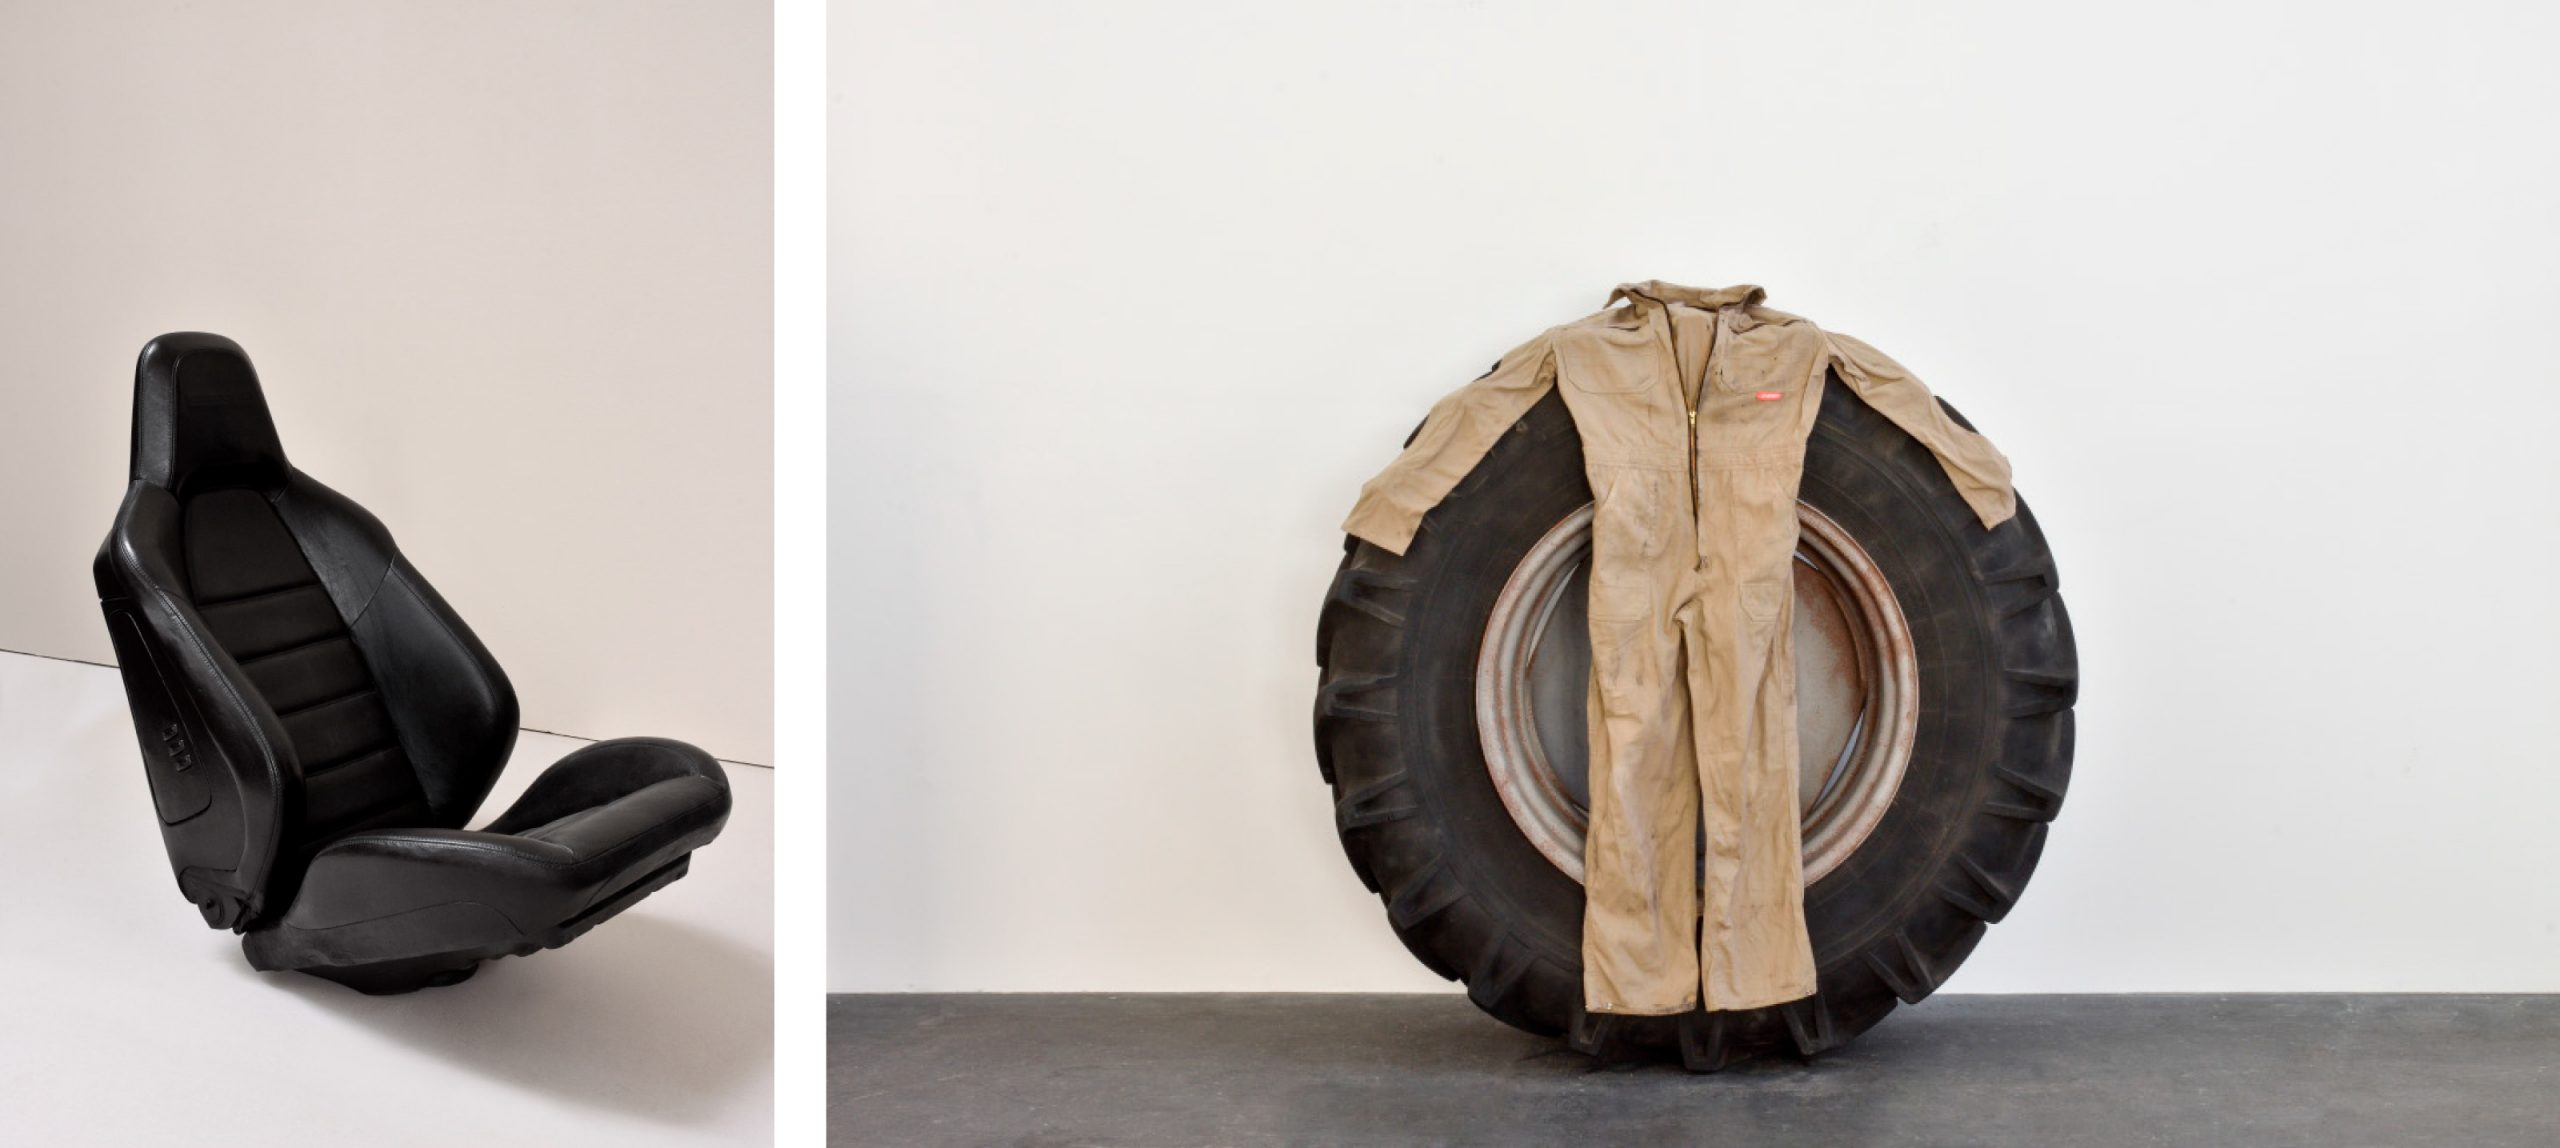 Car seat made out of bronze and a tractor tyre with a boiler suit on top in reference to Francis Bacon.